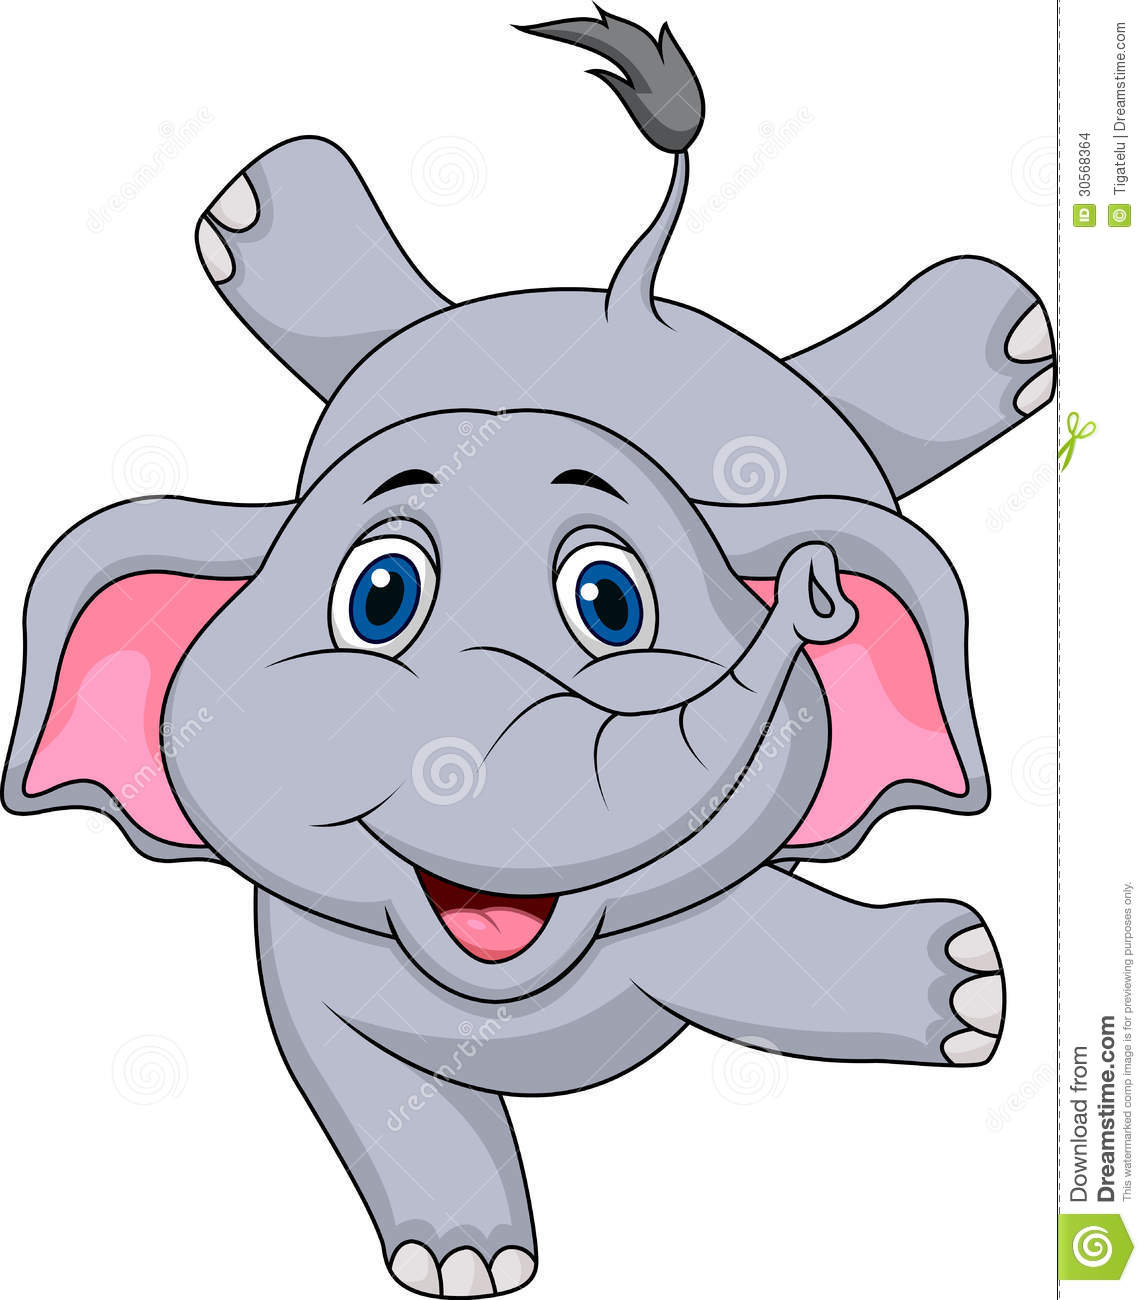 Cute Elephant Cartoon Circus Stock Images - Image: 30568364